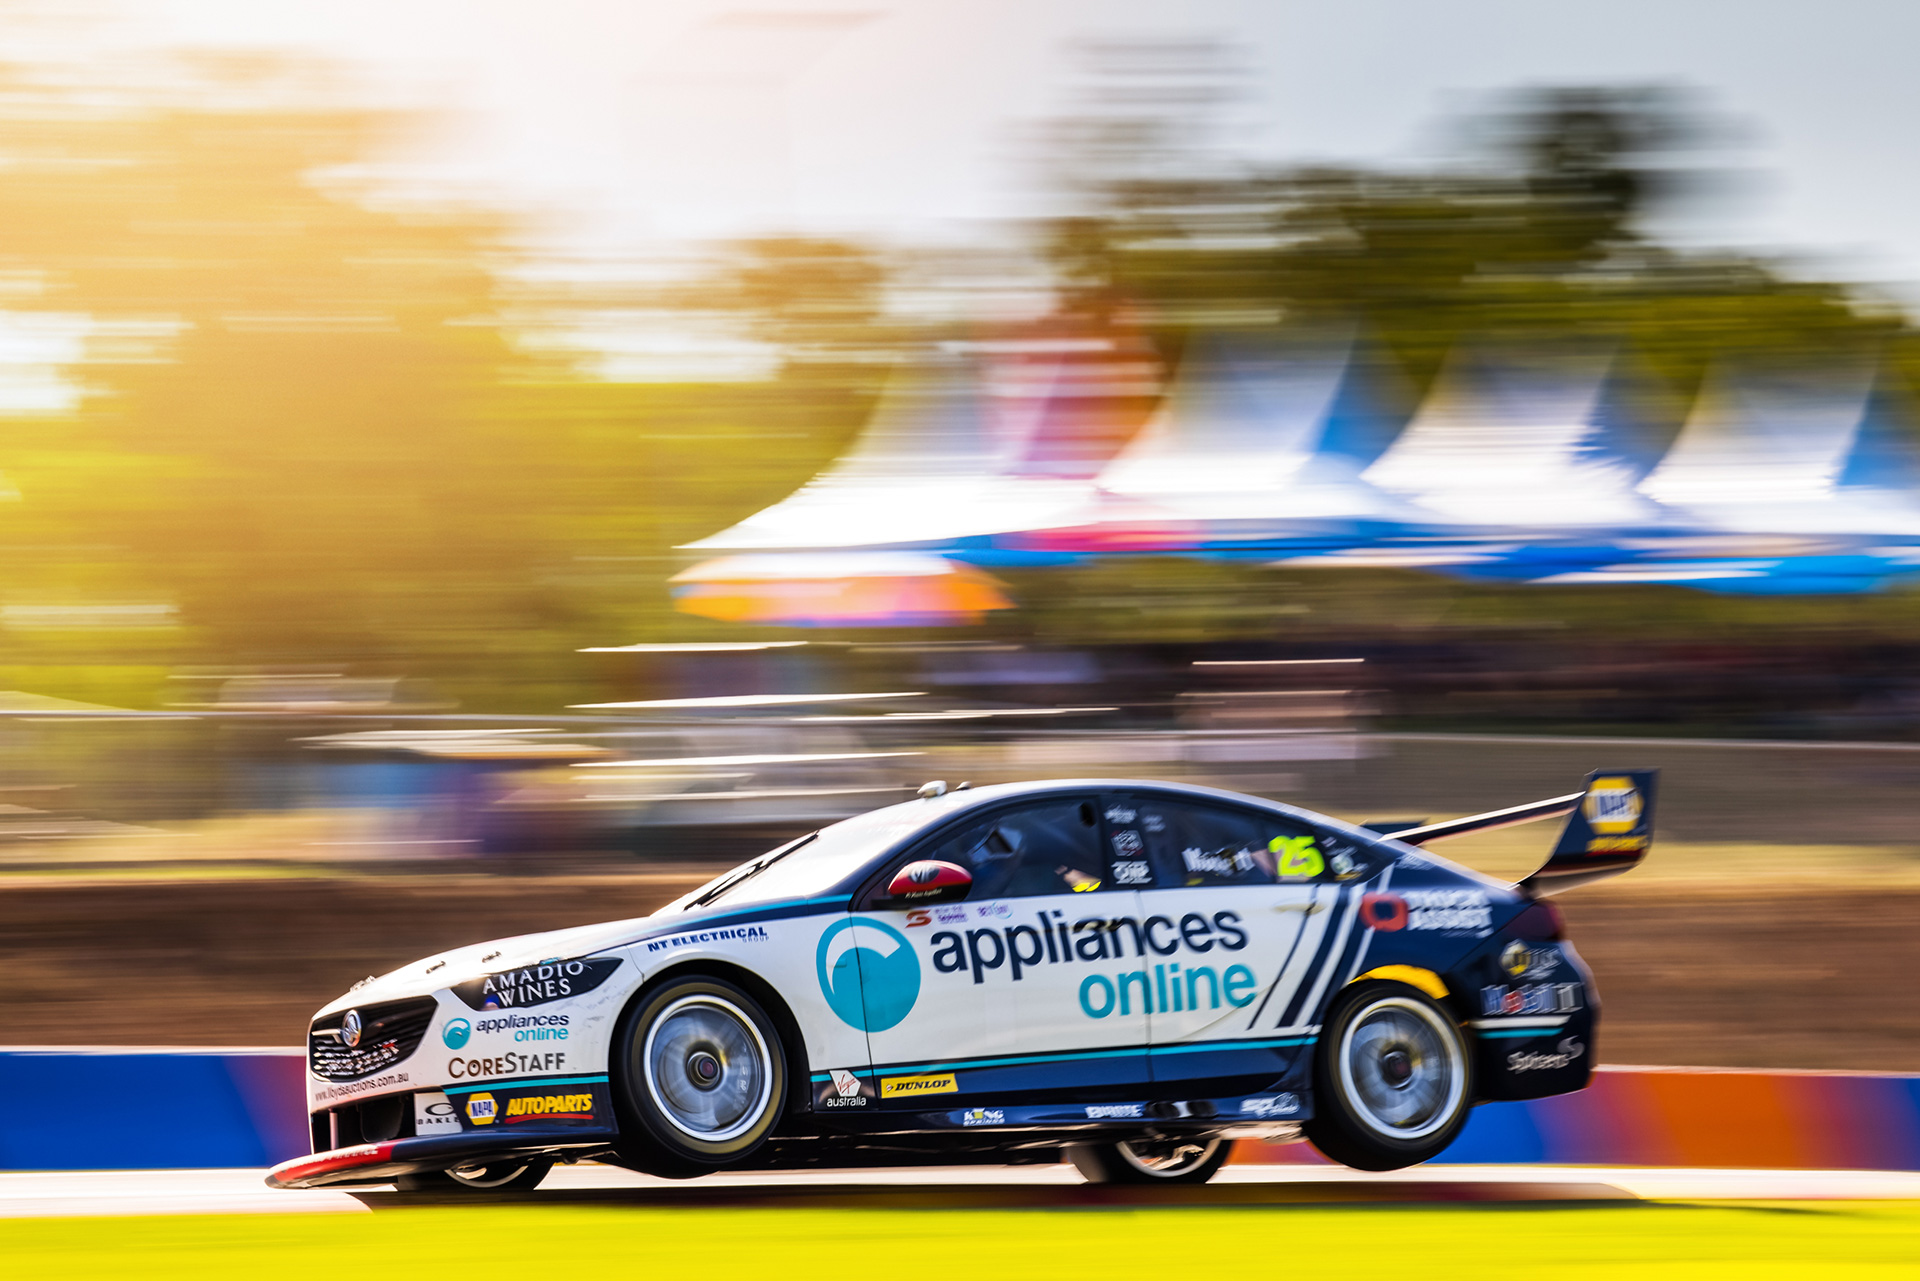 You can own Chaz Mostert's current Supercar.